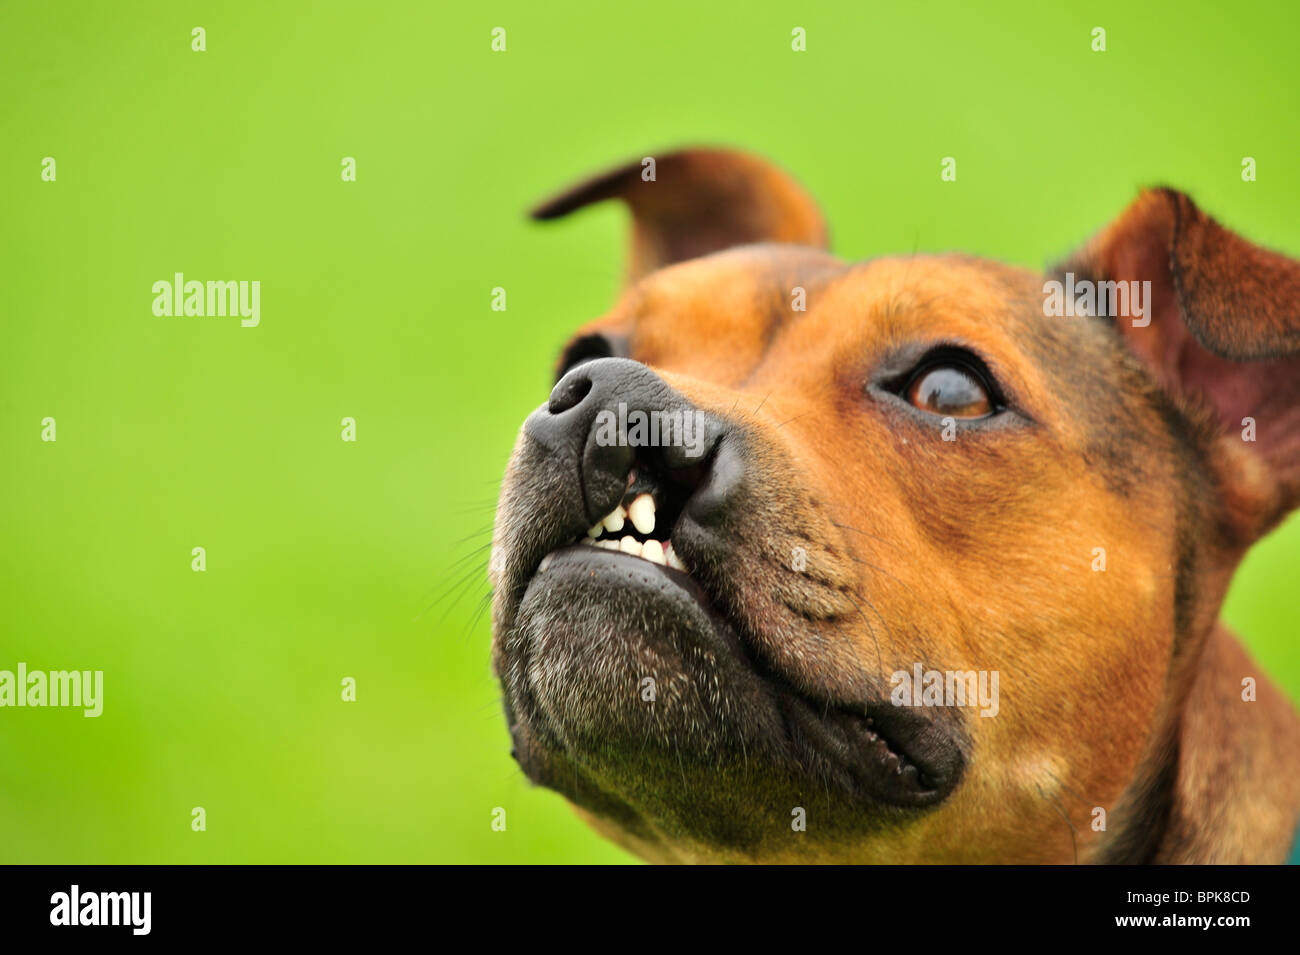 hare lip in a staffordshire bull terrier dog - Stock Image